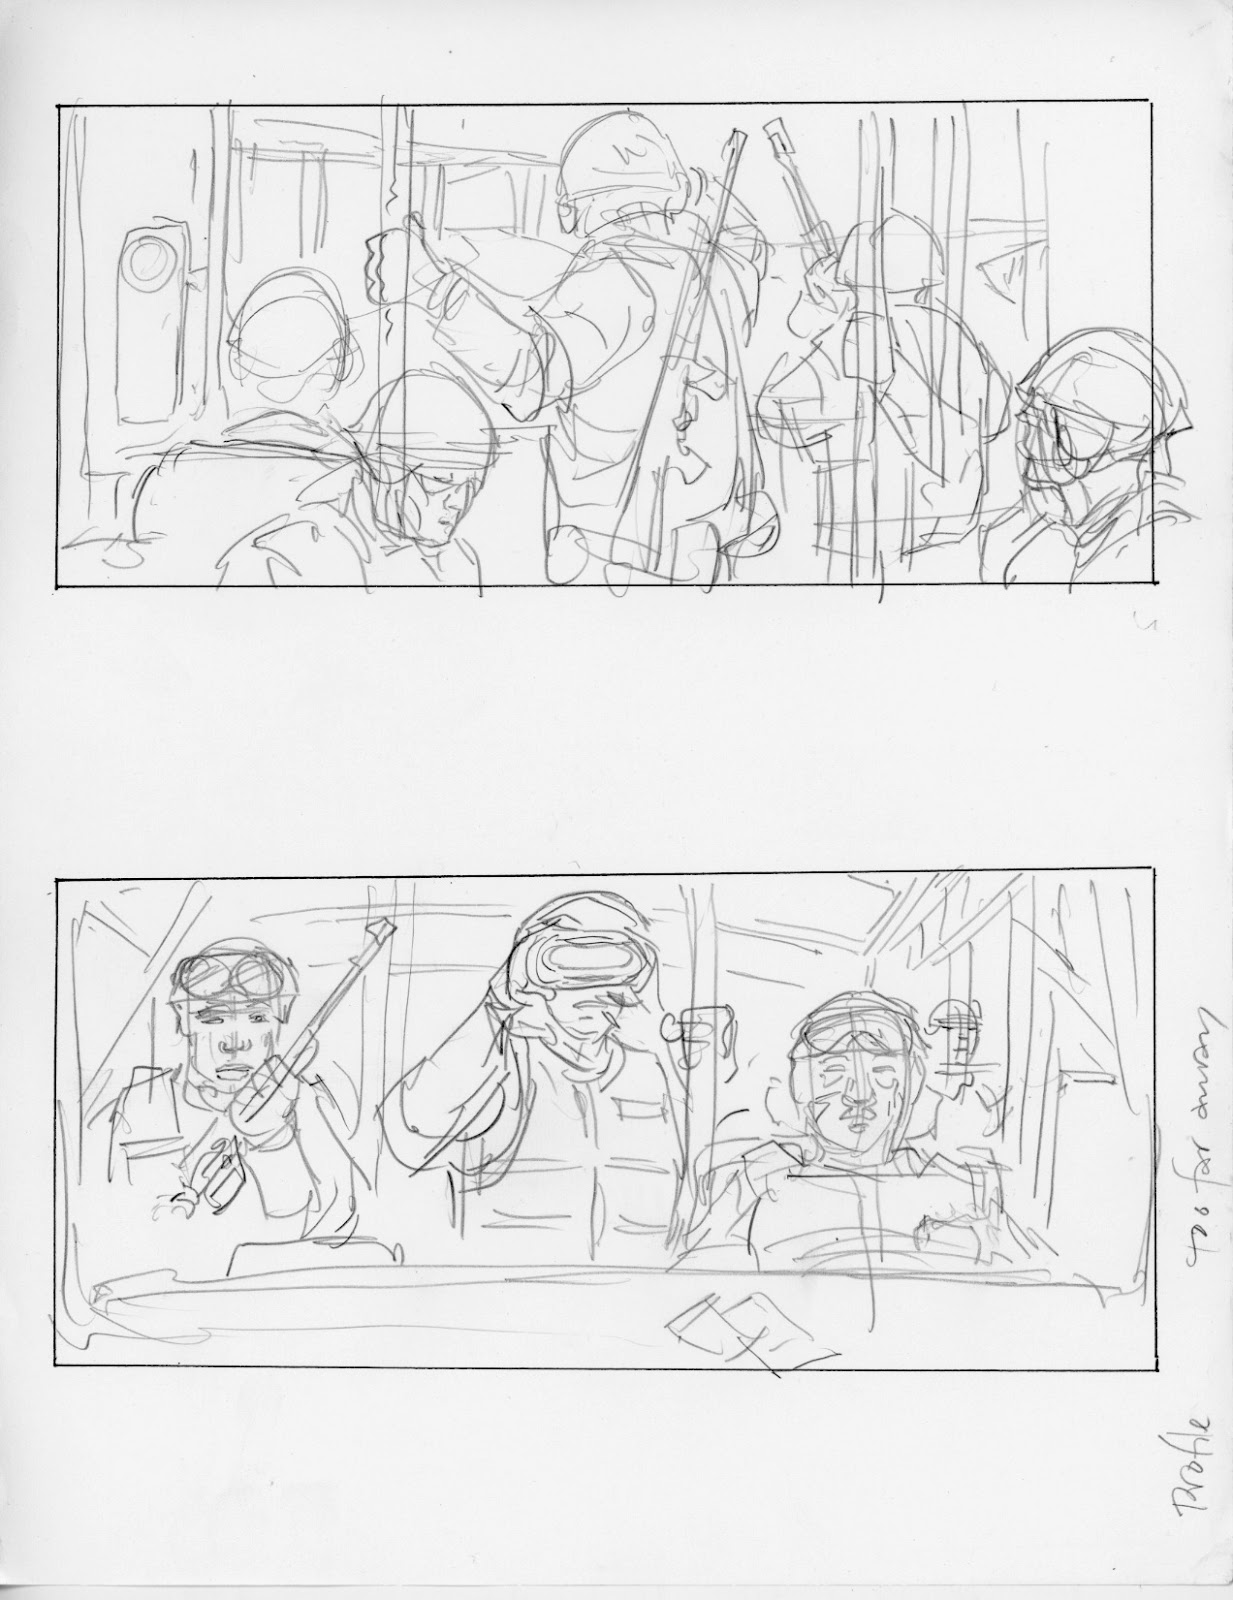 ricardo delgado u0026 39 s blog  battle  los angeles storyboards 029